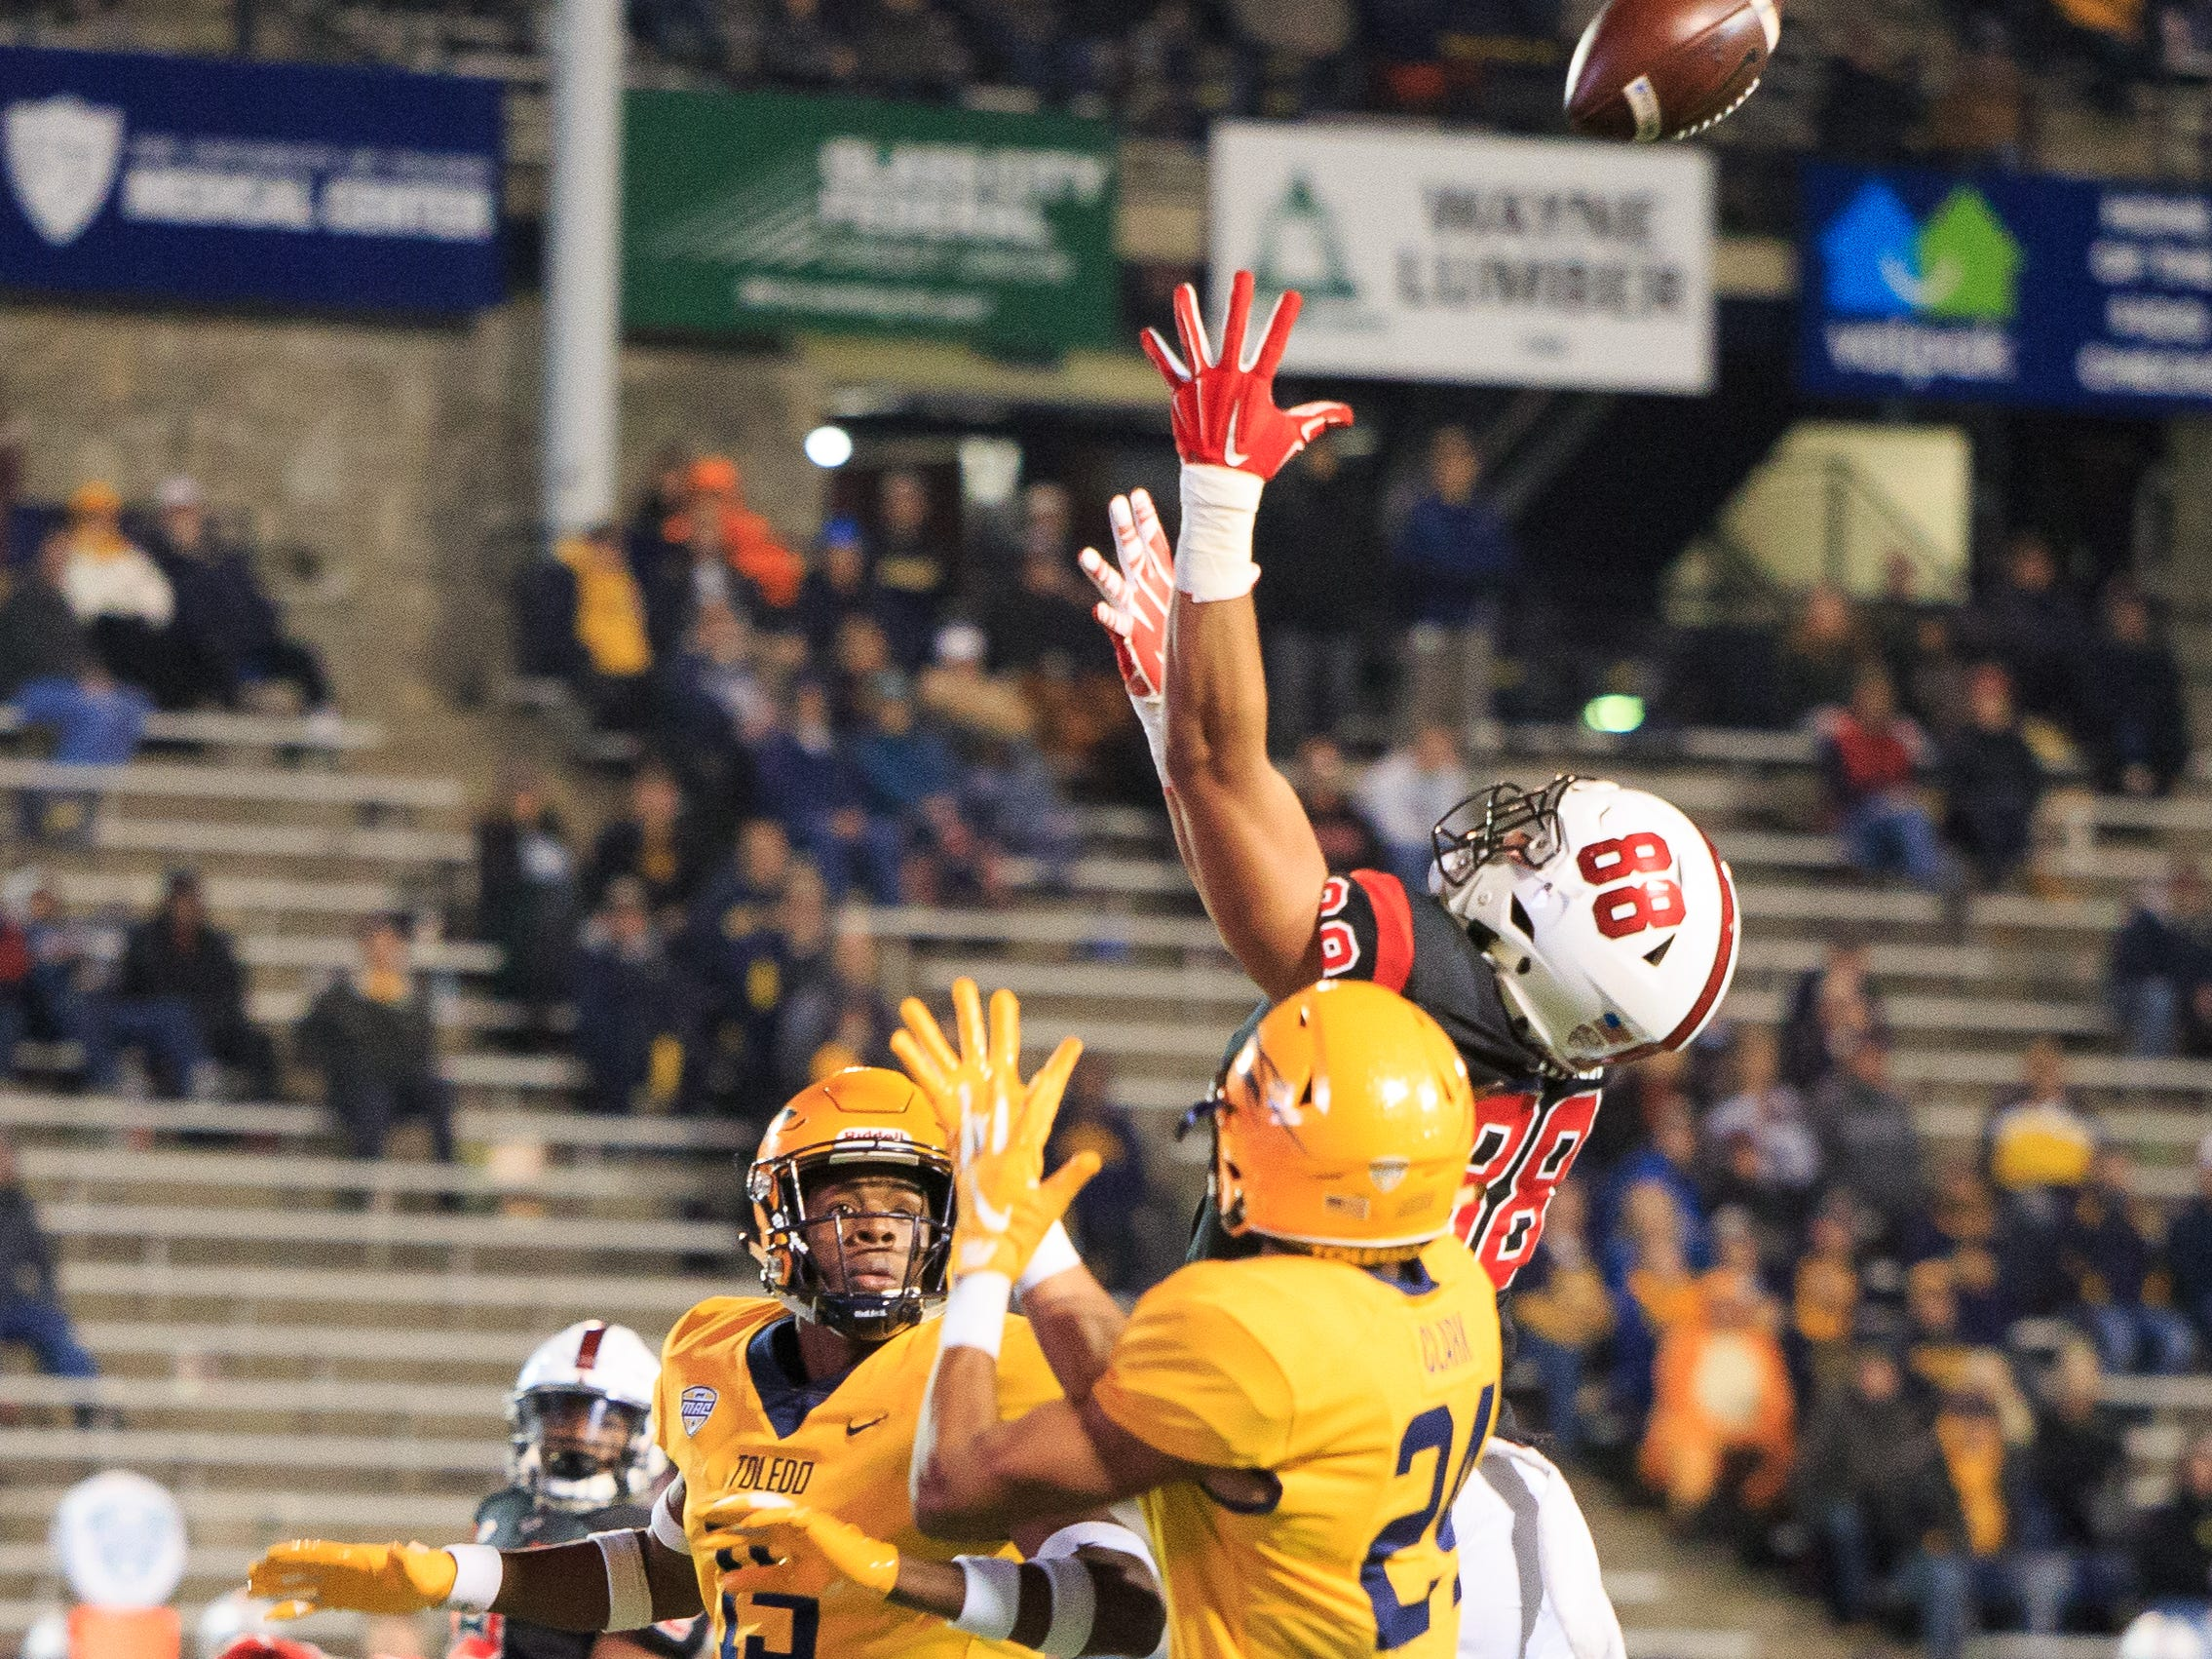 Ball State's Nolan Givan goes up for a catch in the game against Toledo. Toledo won the game, 45-13.